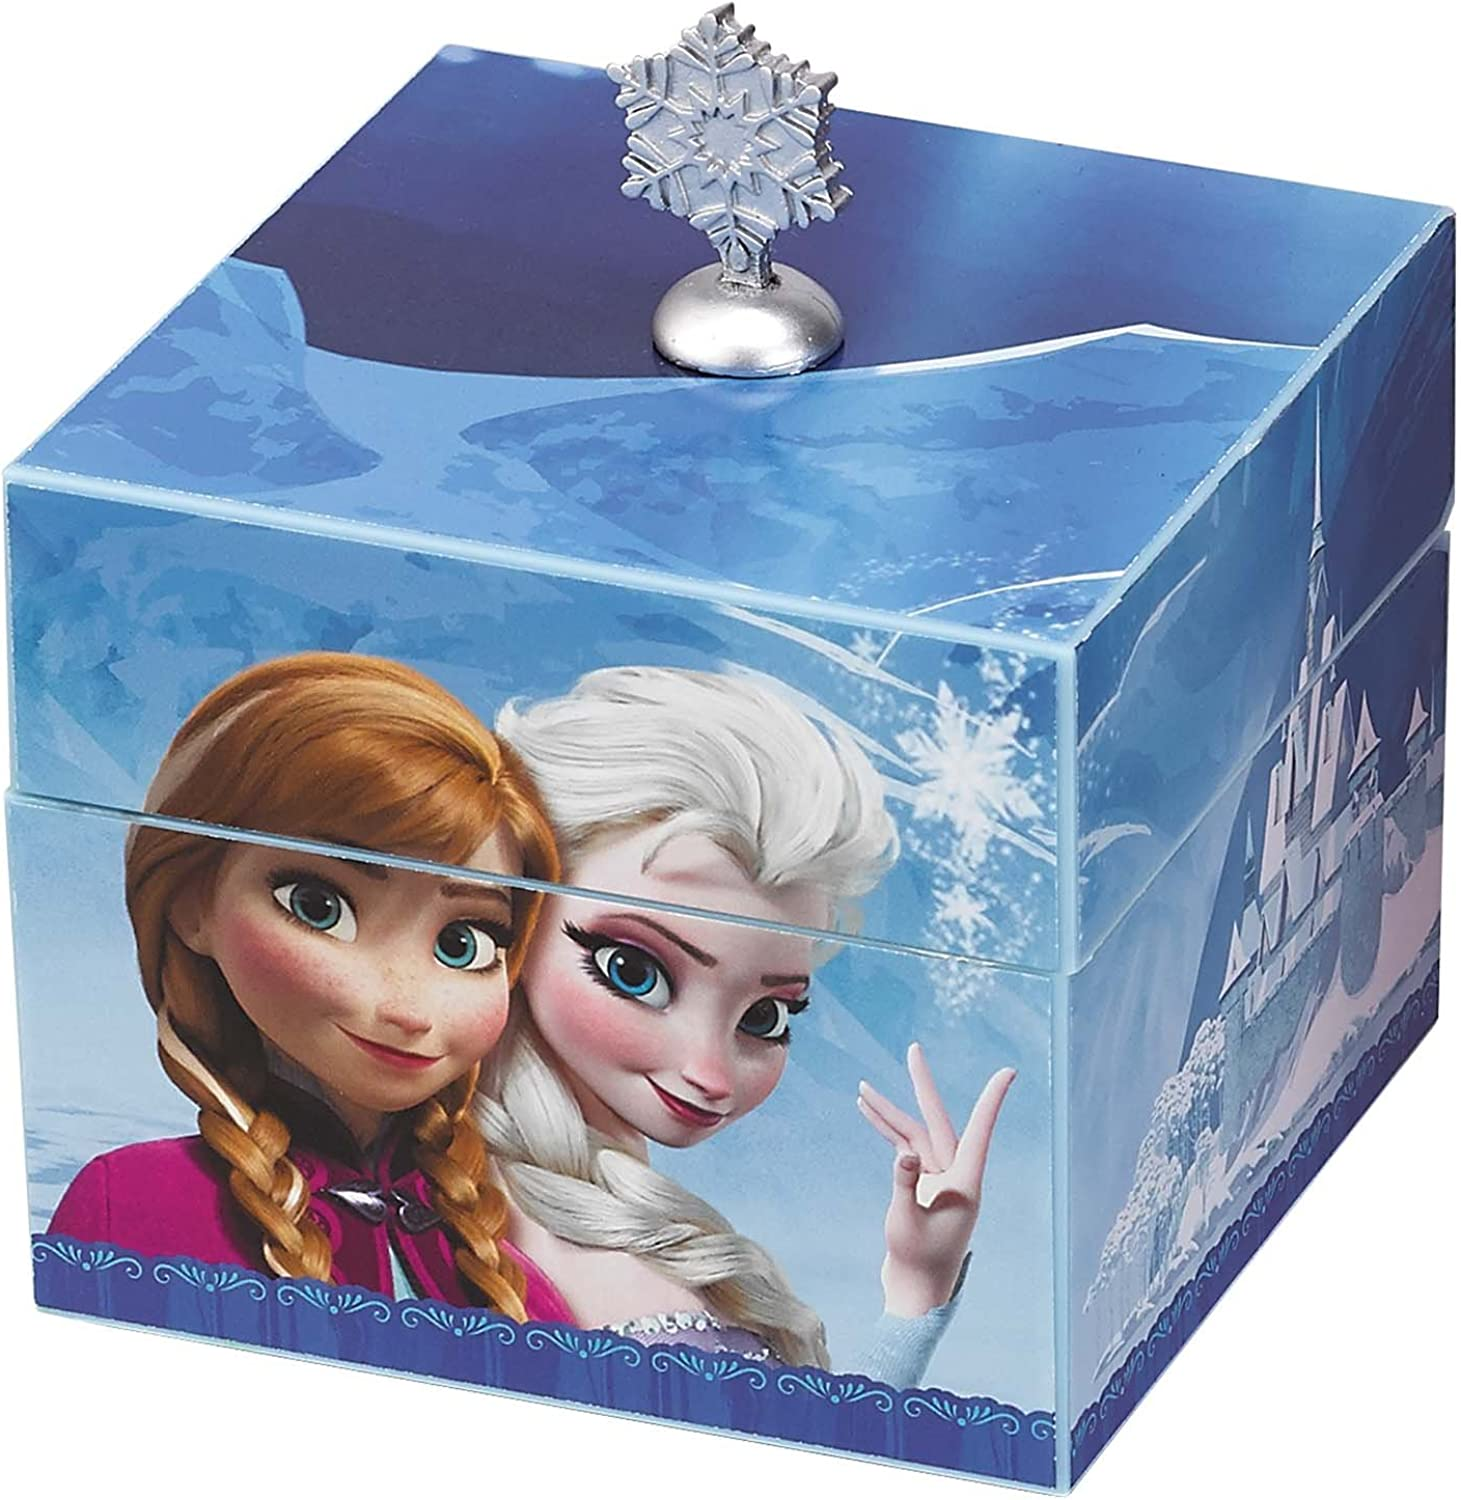 Disney Frozen Anna & Elsa bluee Keepsake Musical Box